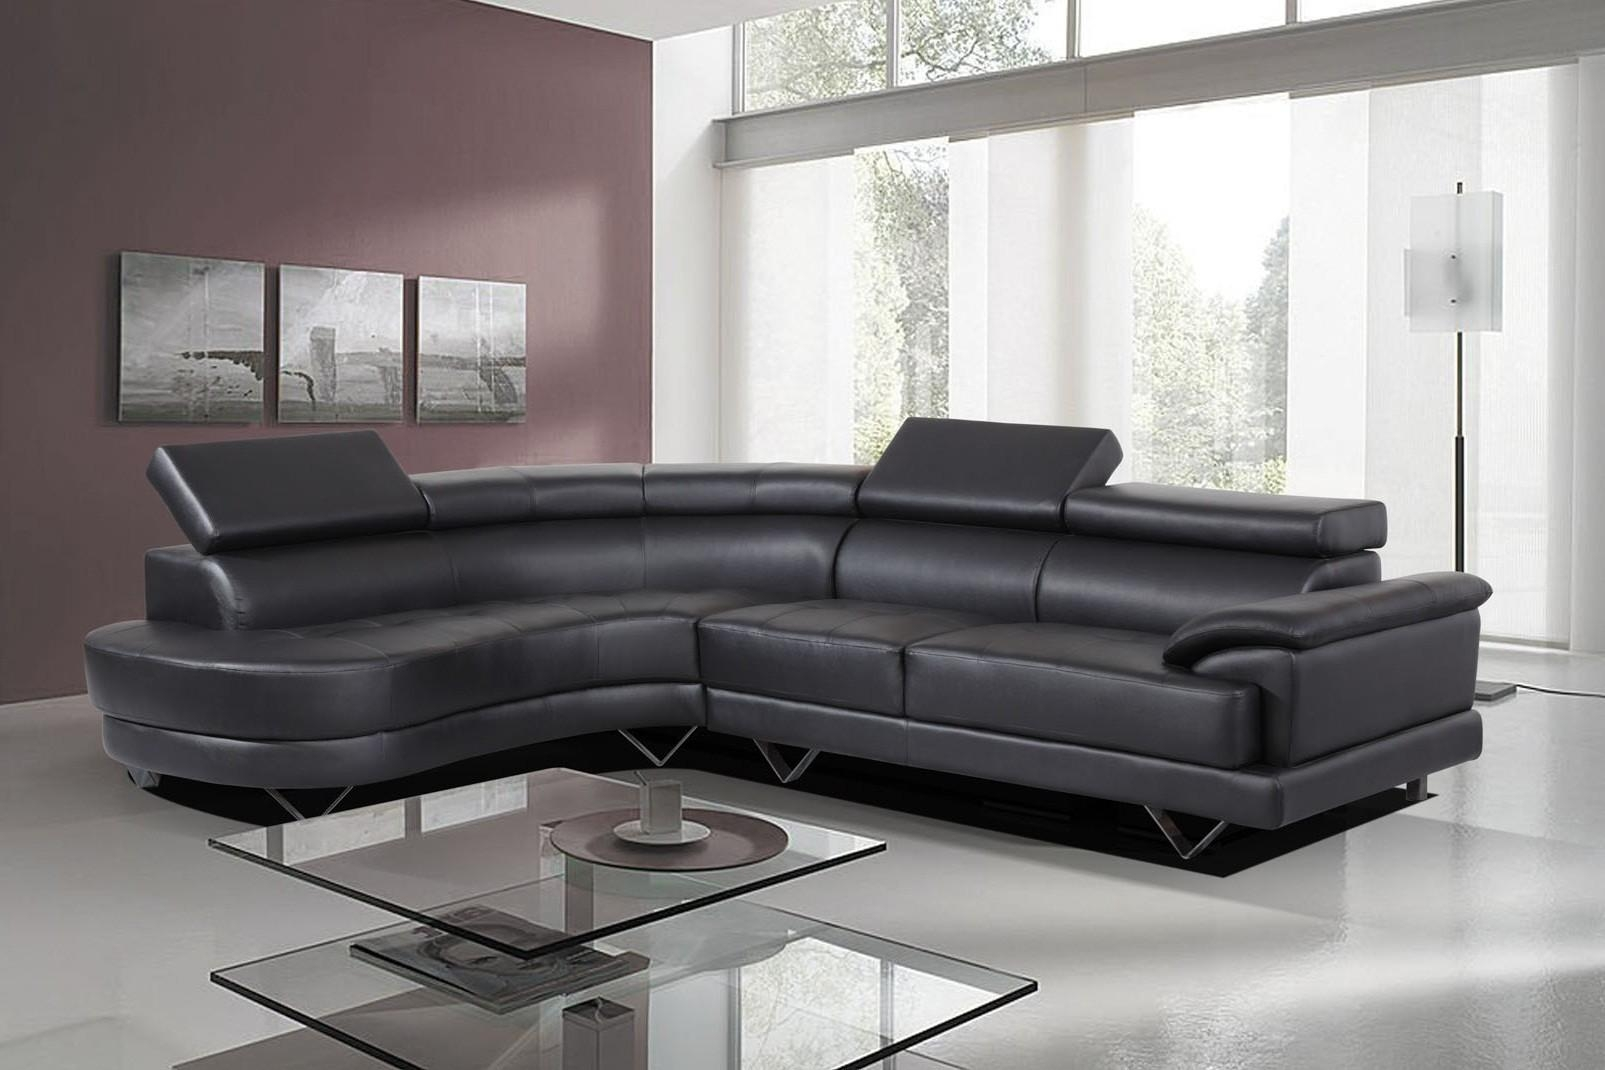 Corner Sofa Leather With Hand 13 Throughout Large Black Leather Corner Sofas (Image 8 of 22)